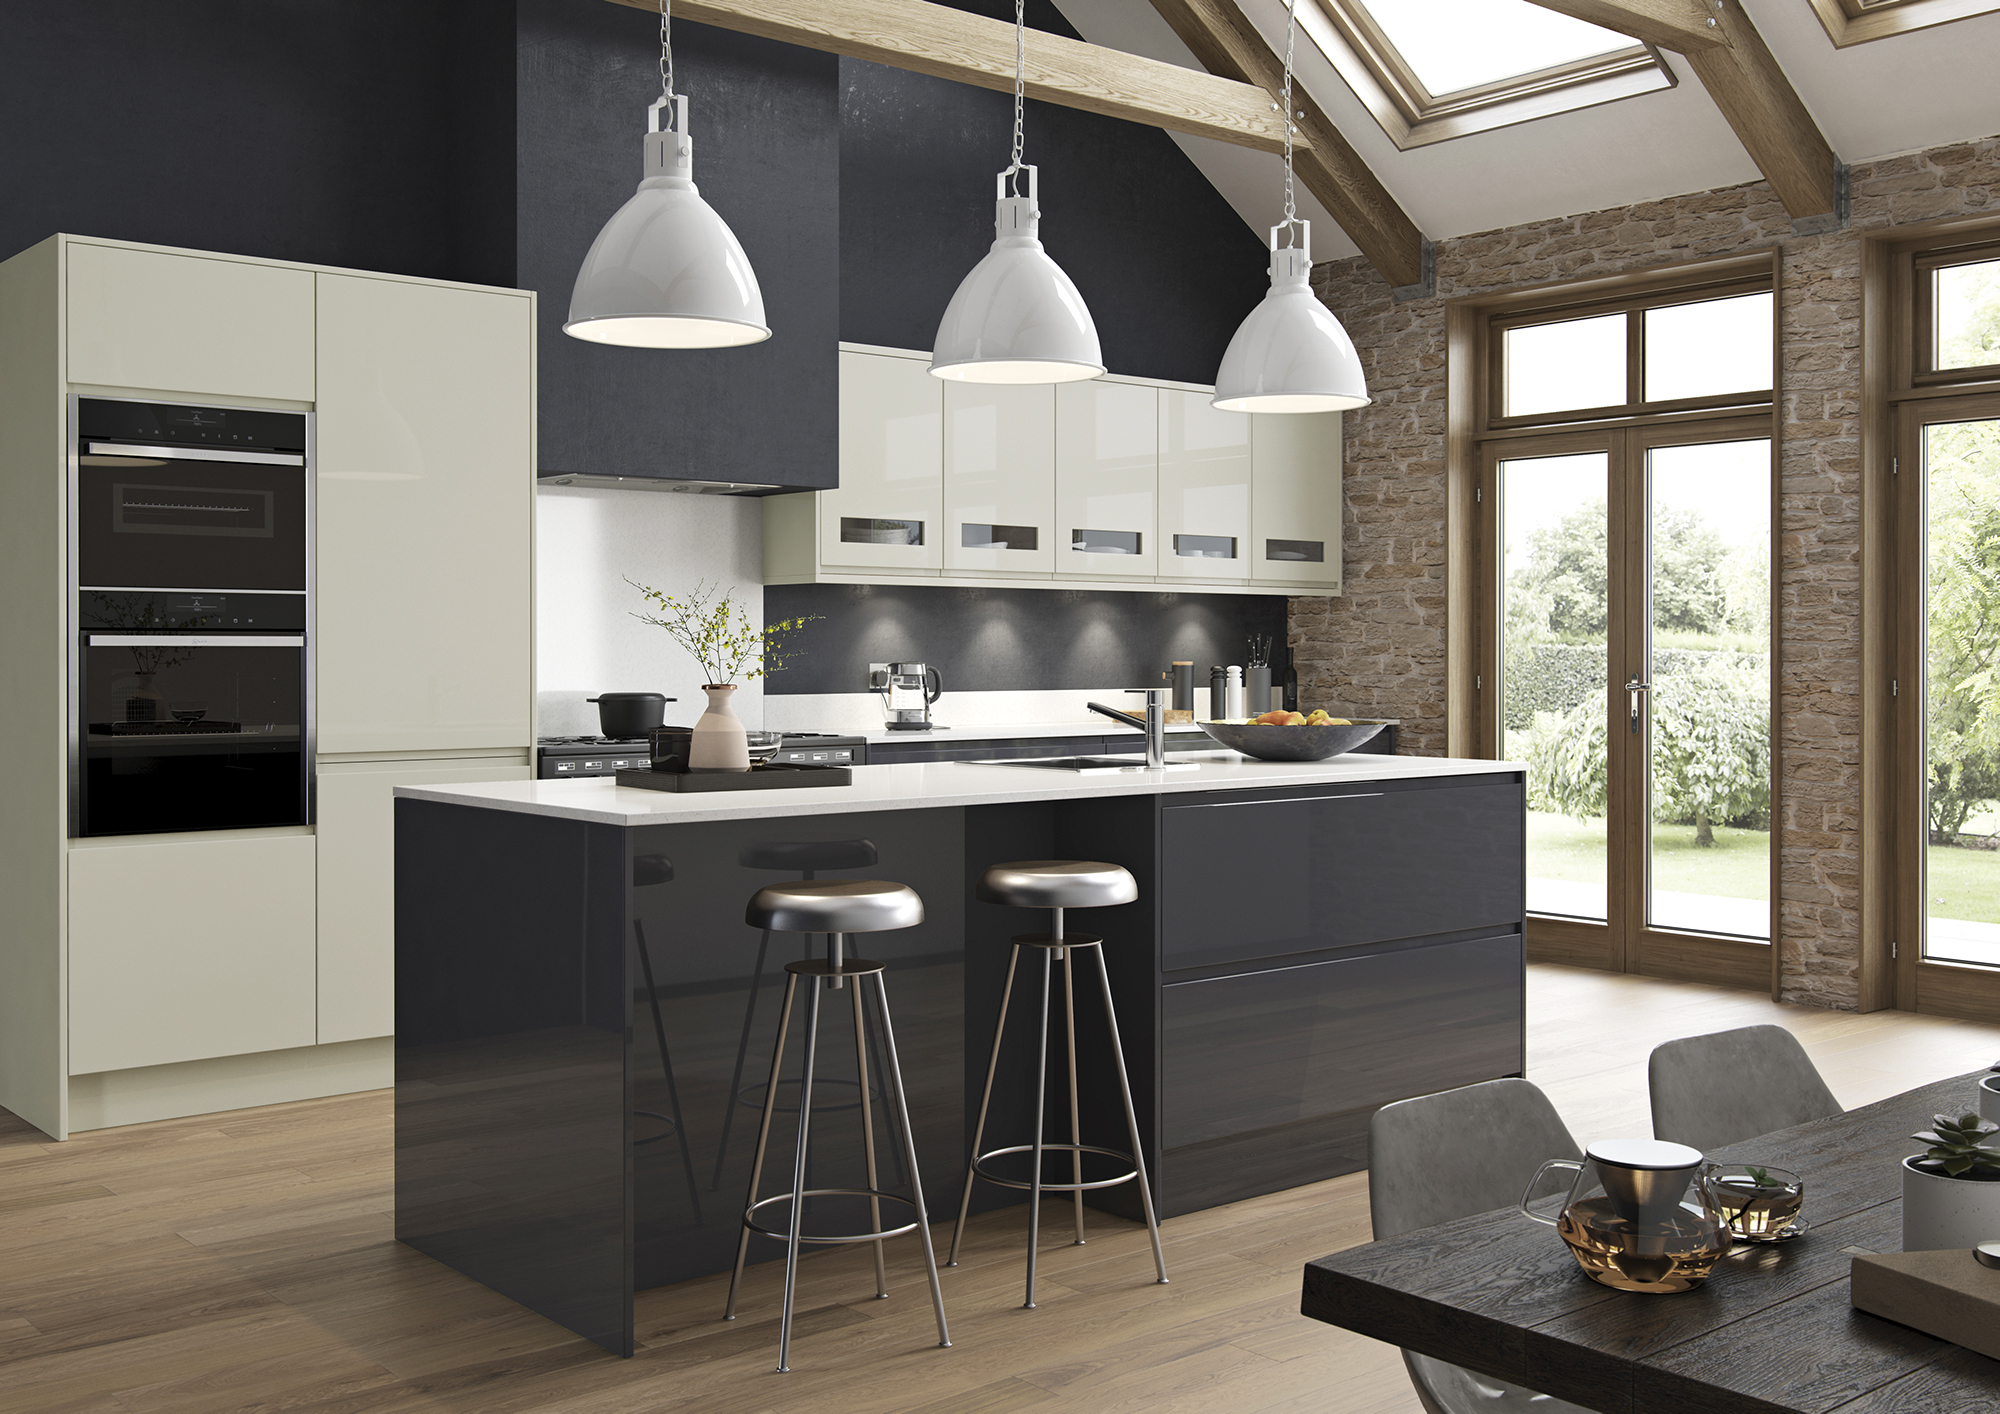 Siddington Gloss Graphite and Porcelain Main Shoot, from Riley James Kitchens Stroud